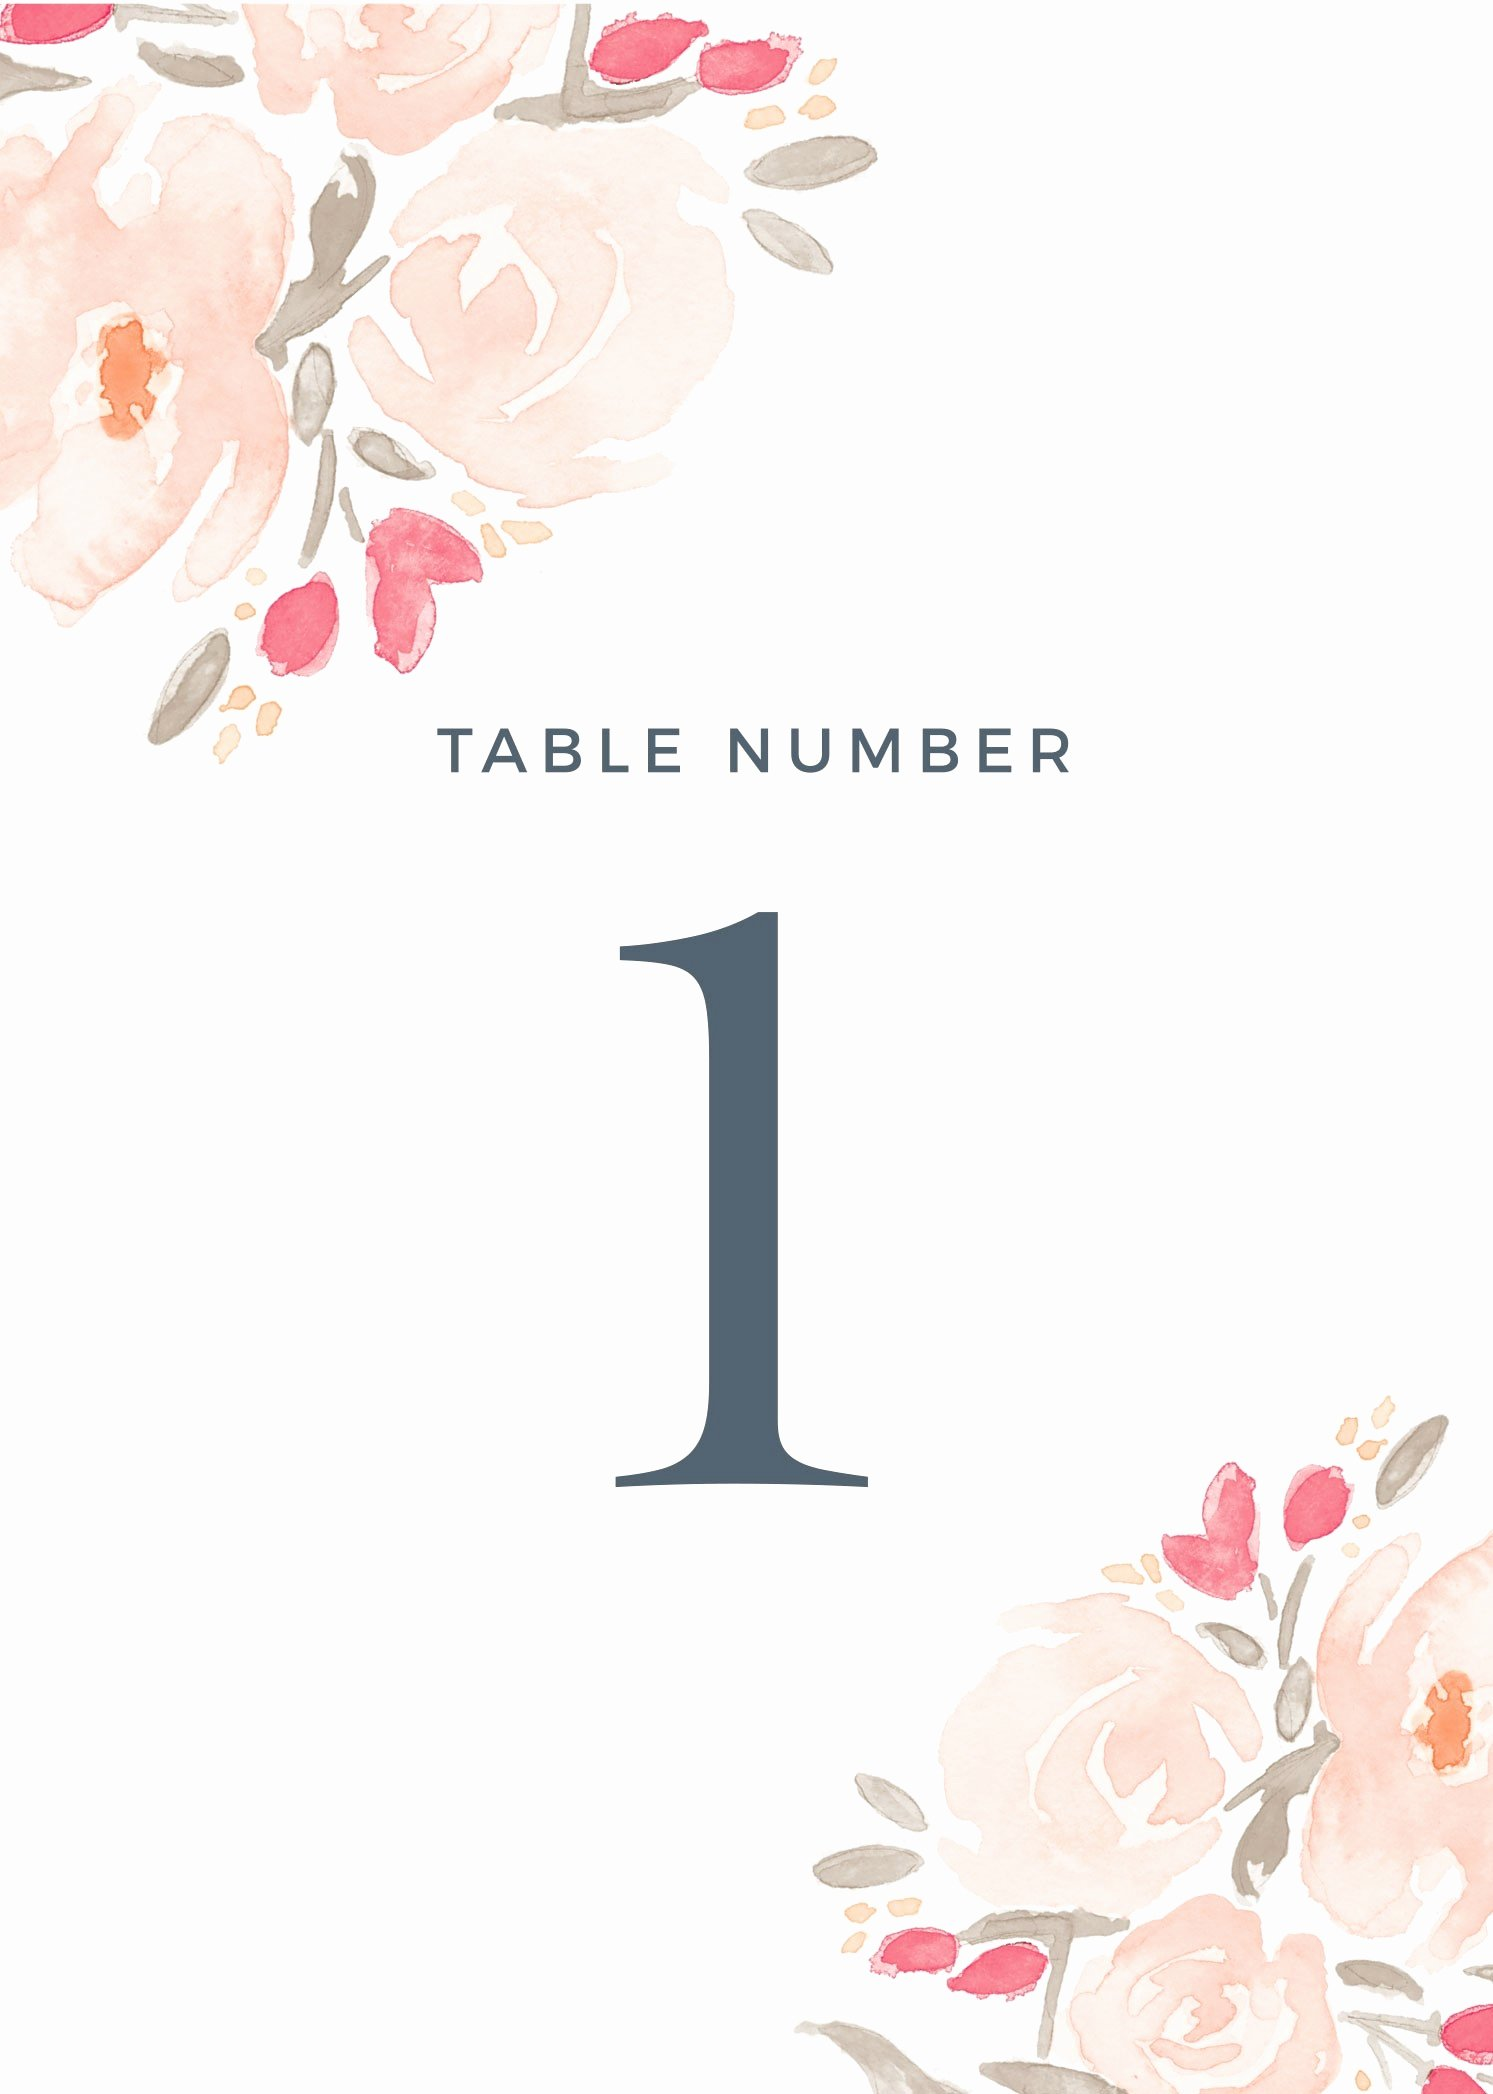 Free Table Number Templates 4x6 Fresh Free Printable Custom Wedding Table Number Templates